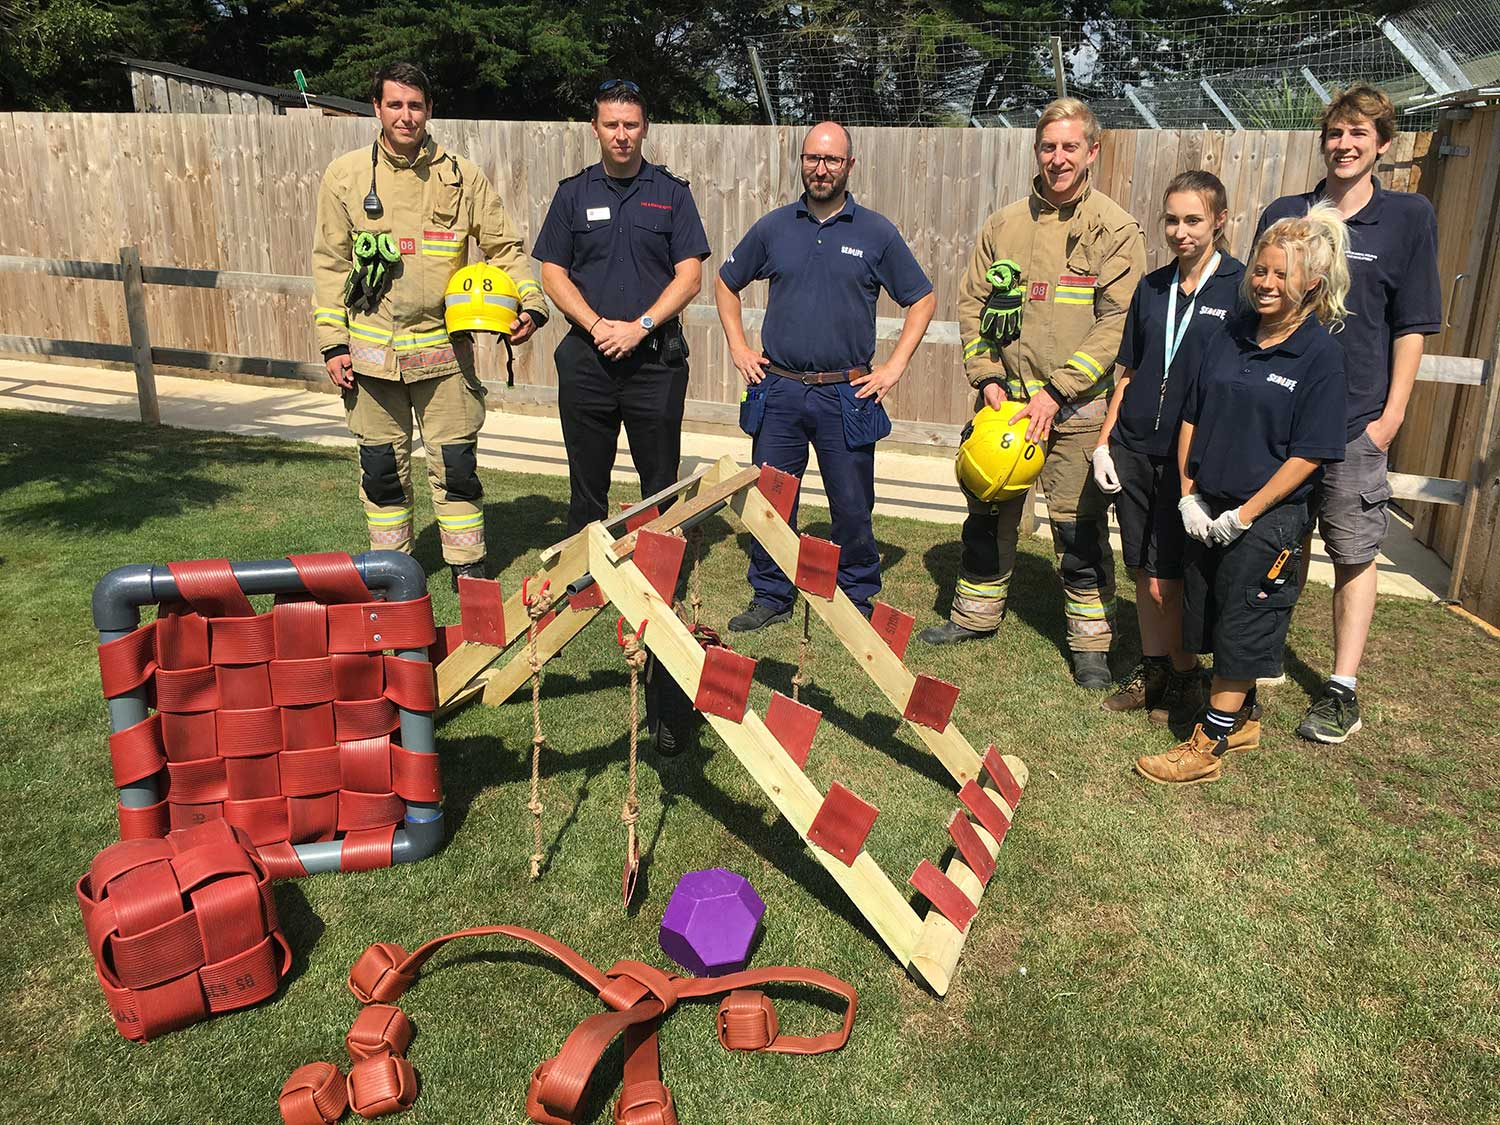 Dorset And Wiltshire Fire Service And The Weymouth SEA LIFE Team